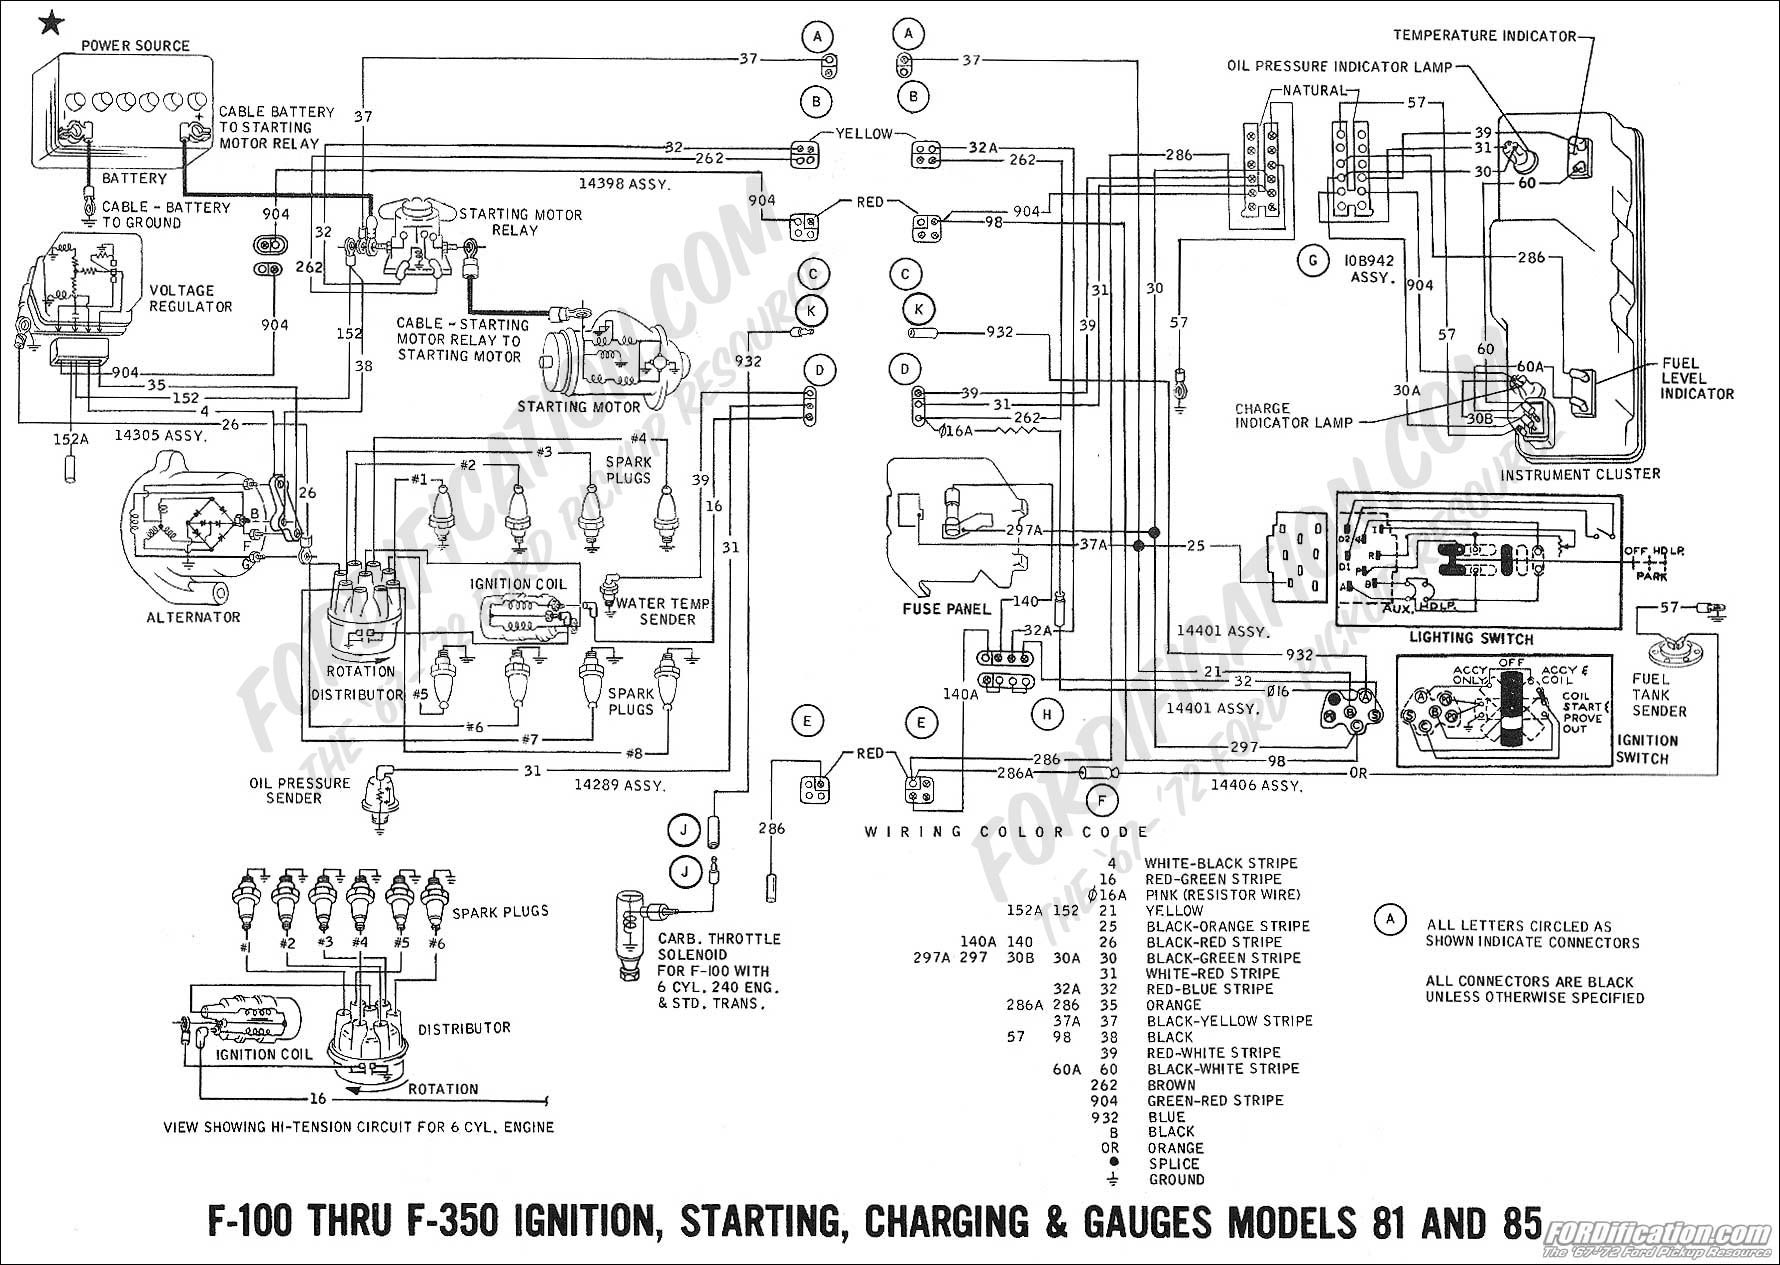 1971 ford f250 wiring diagram wiring diagram 71 camaro wiring diagram 71 ford truck wiring diagram #14